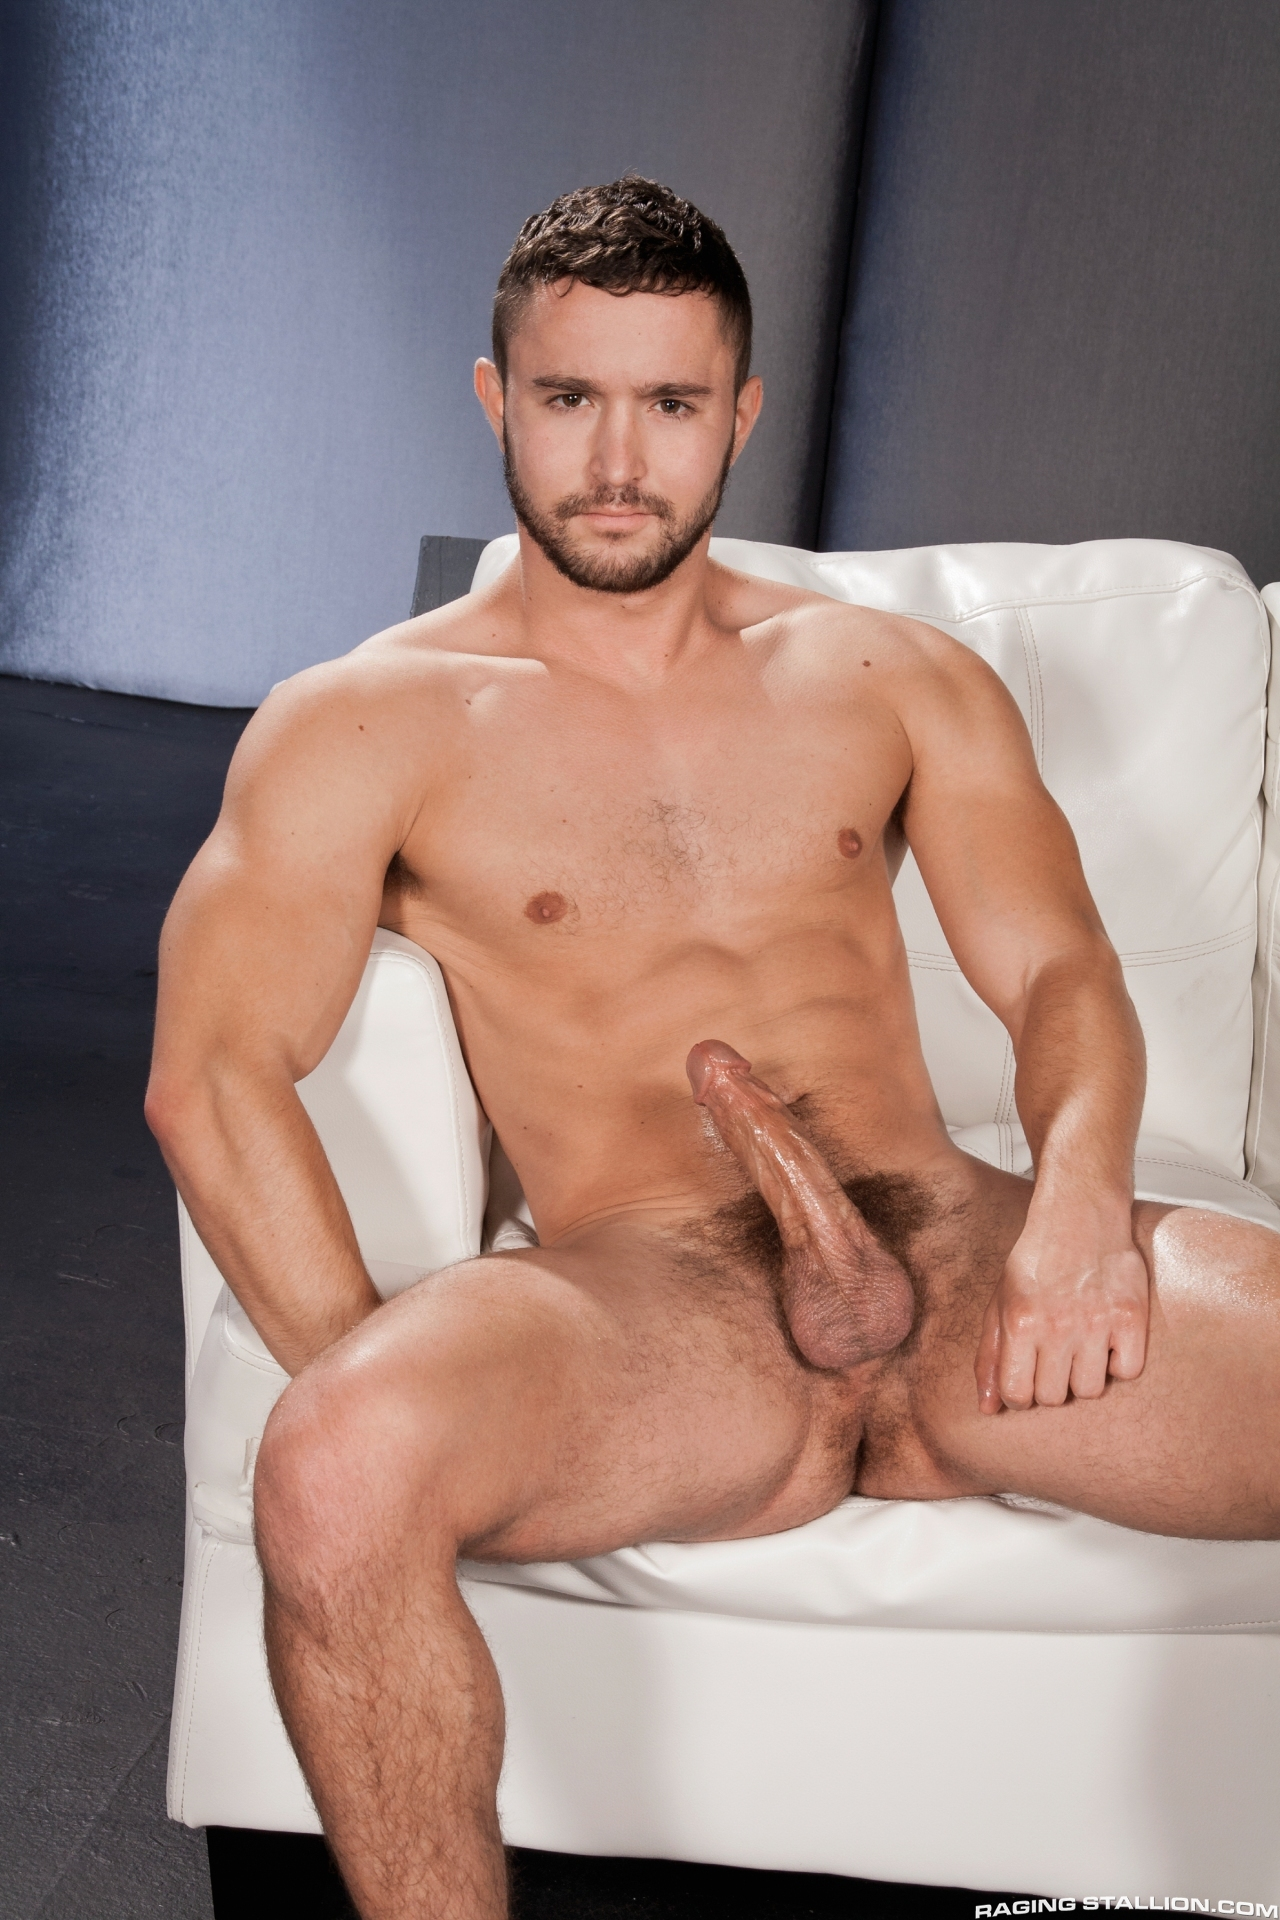 Gay porn newcomer conner bradley takes on 5